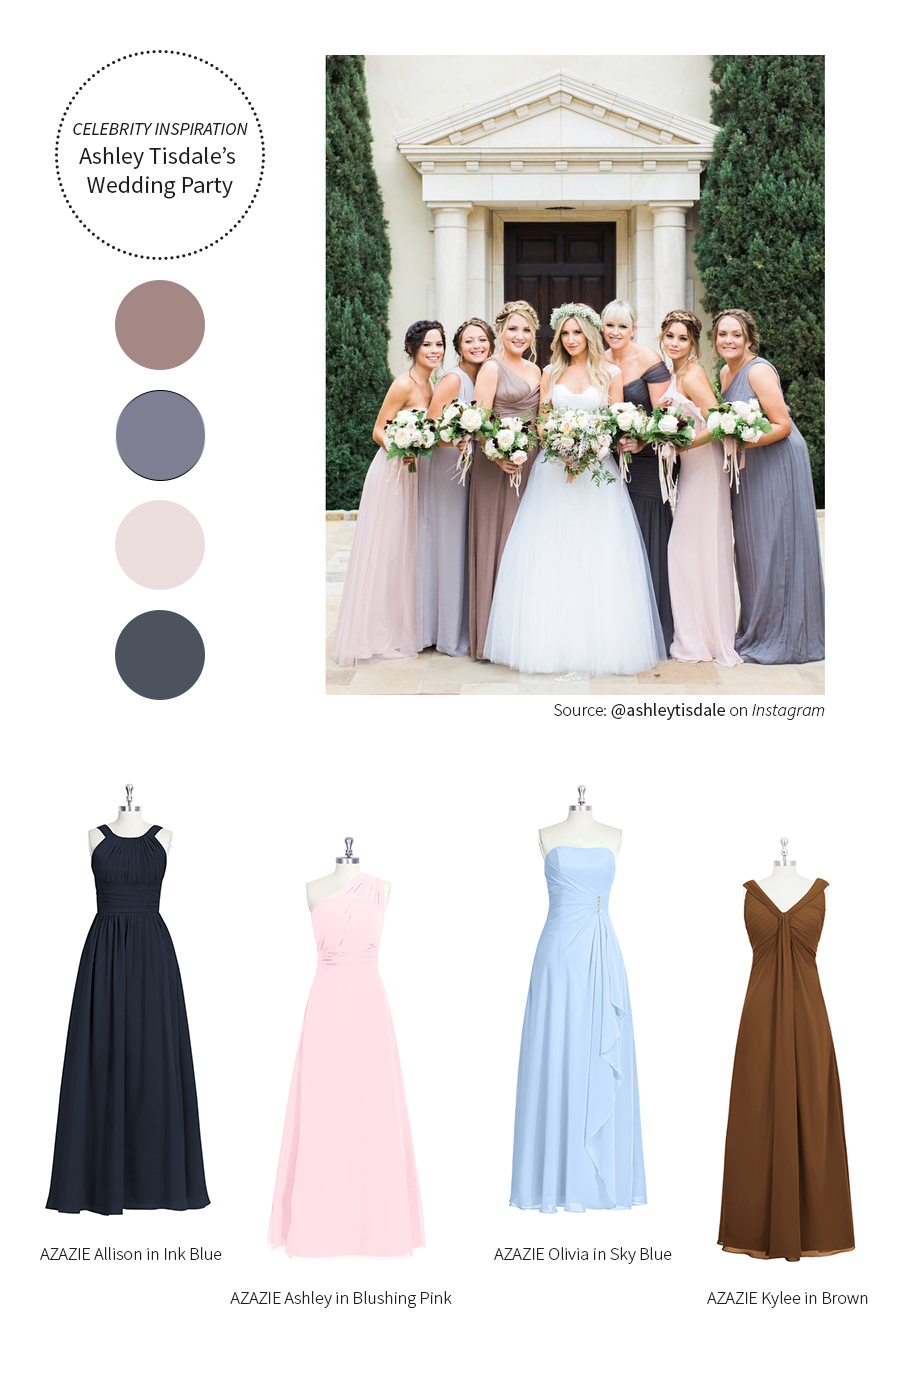 Azazieashleytisdaleinspirationbridesmaiddresses wedding dresses pay more attention to the dots not the actually dresses hahaha ombrellifo Image collections